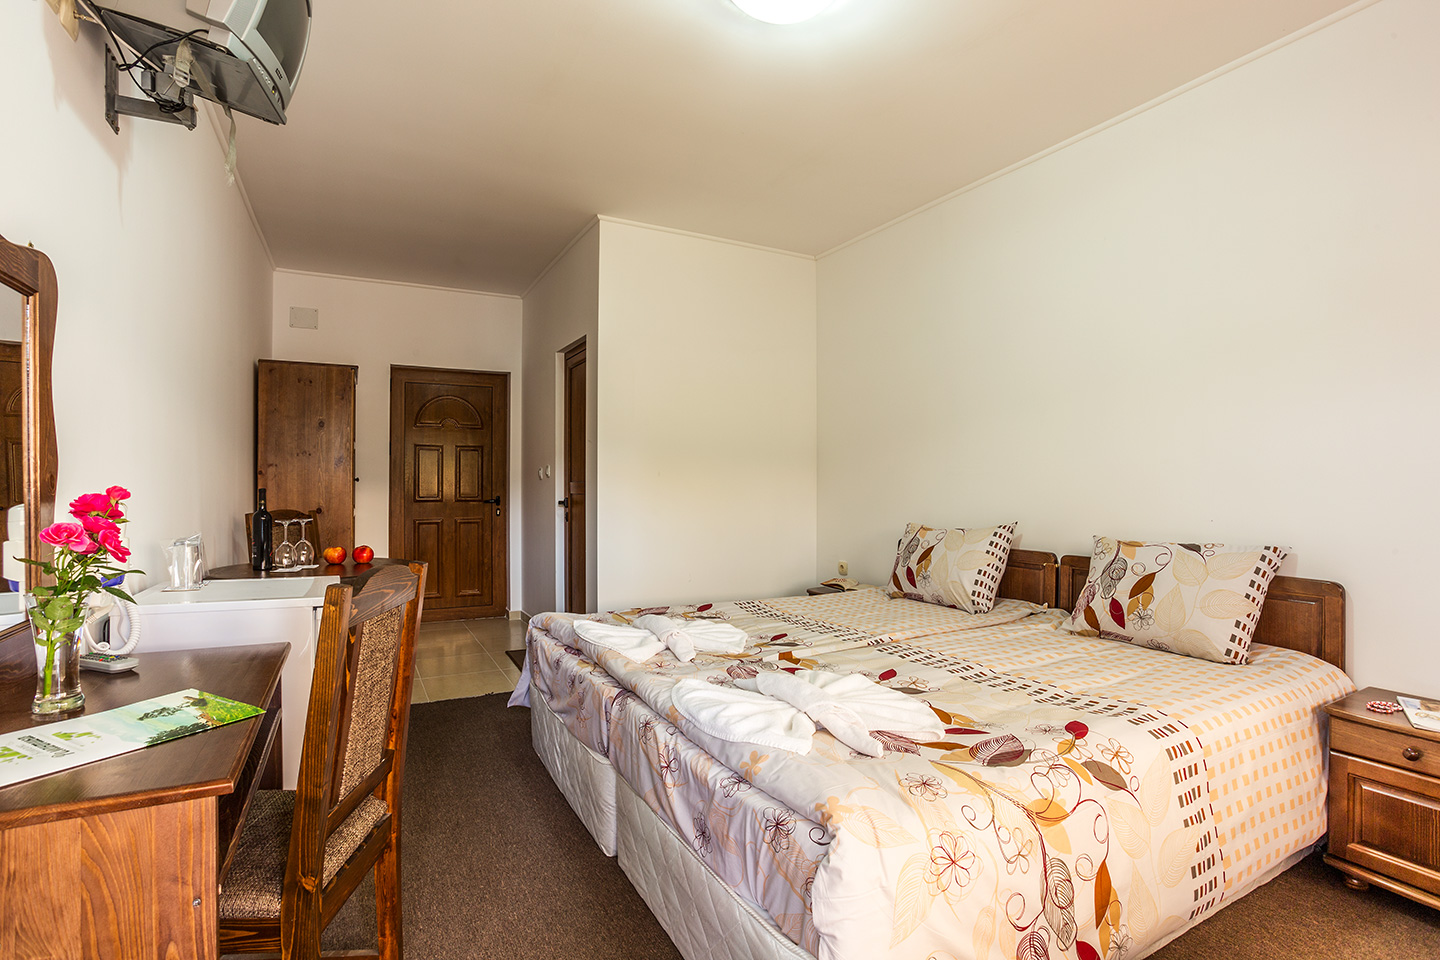 Double rooms №702 and №703 at separate hotel building